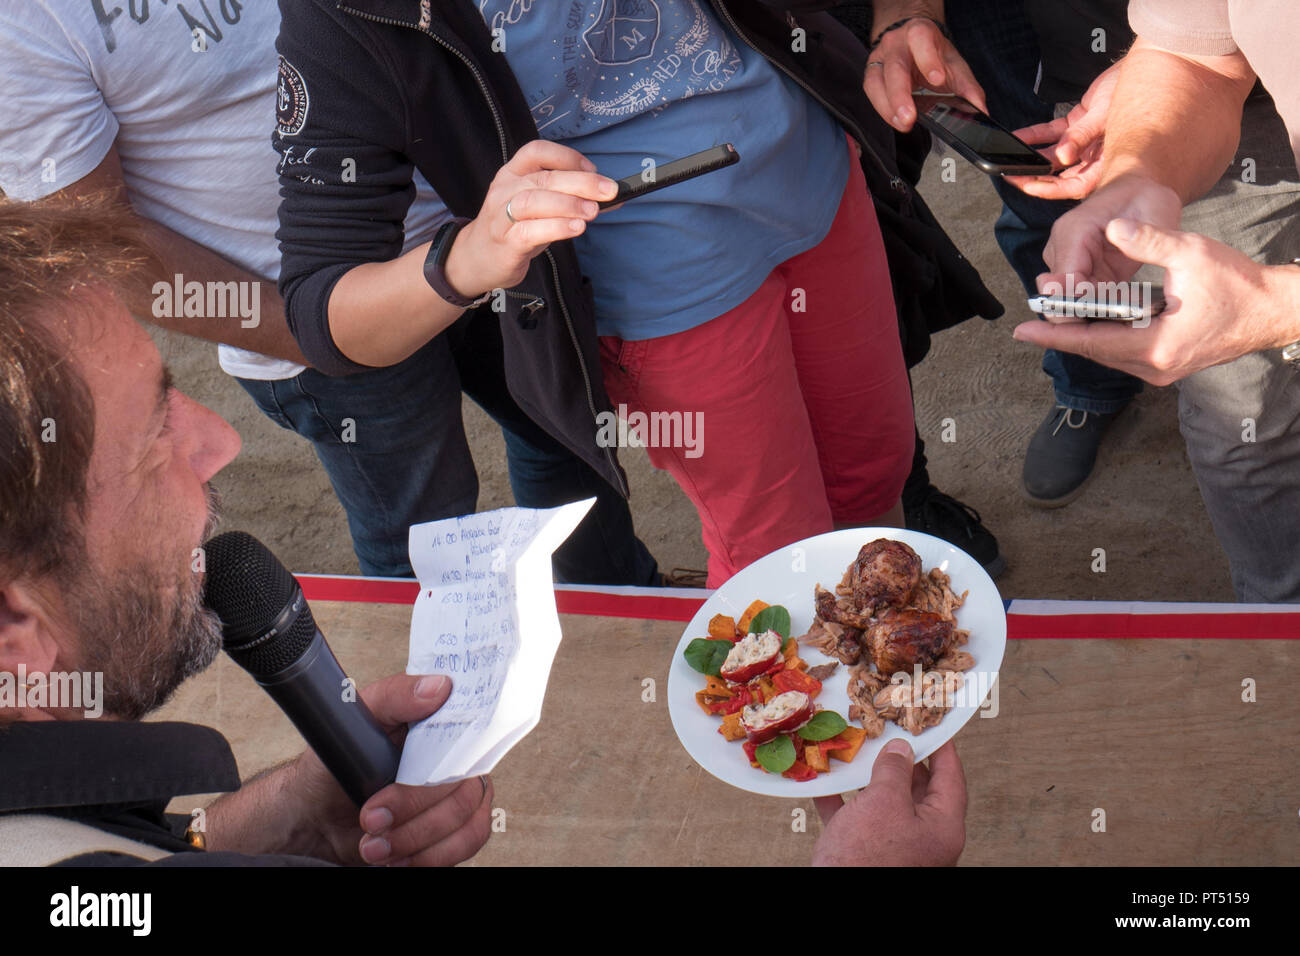 Templin, Brandenburg. 06th Oct, 2018. 06 October 2018, Germany, Templin: At the first 'Brandenburg Barbecue Championship' in the 'El Dorado Templin' one of the presented dishes is photographed. A total of eight teams grill for the grill crown. Credit: Jörg Carstensen/dpa/Alamy Live News - Stock Image